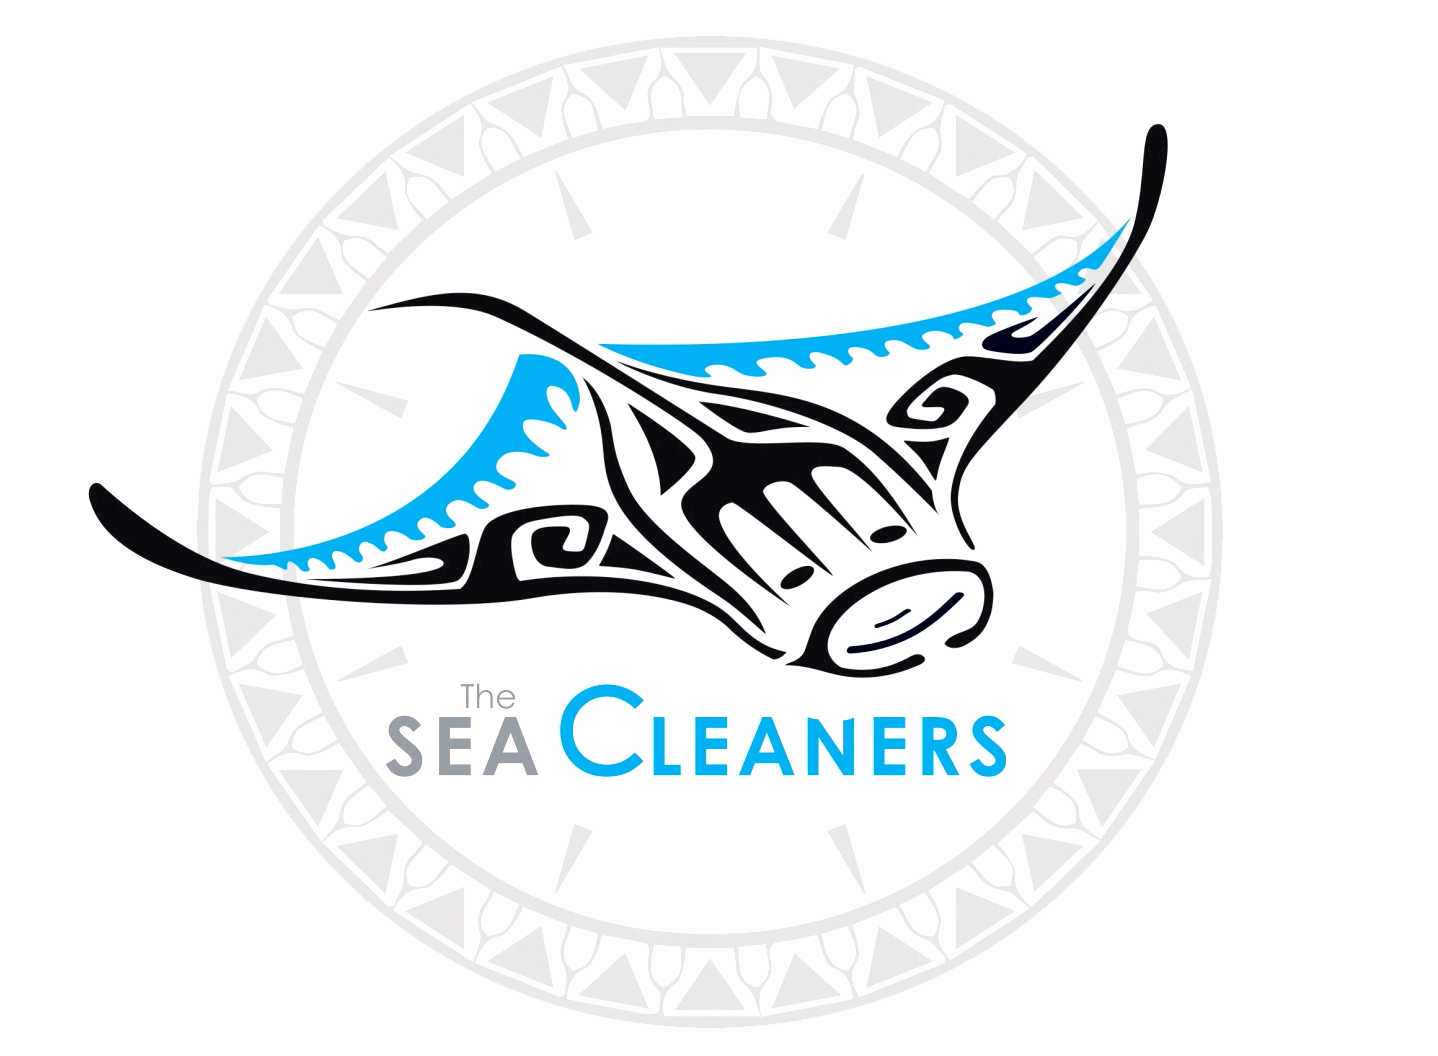 https://www.theseacleaners.org/